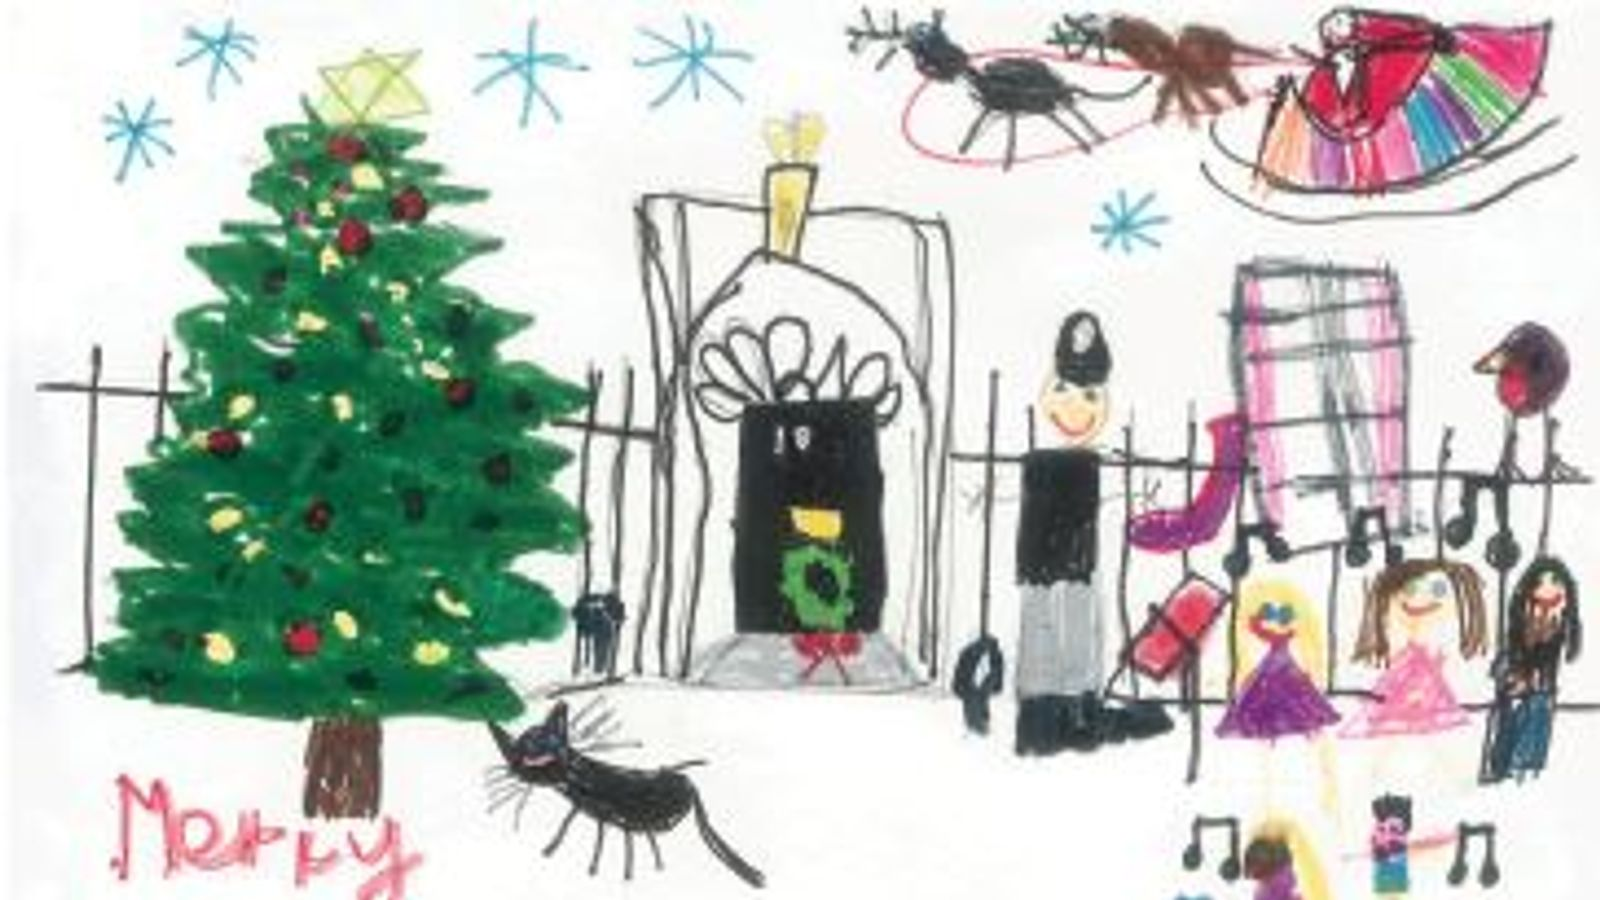 newsody.com : Children\'s drawings picked for No 10 Christmas cards